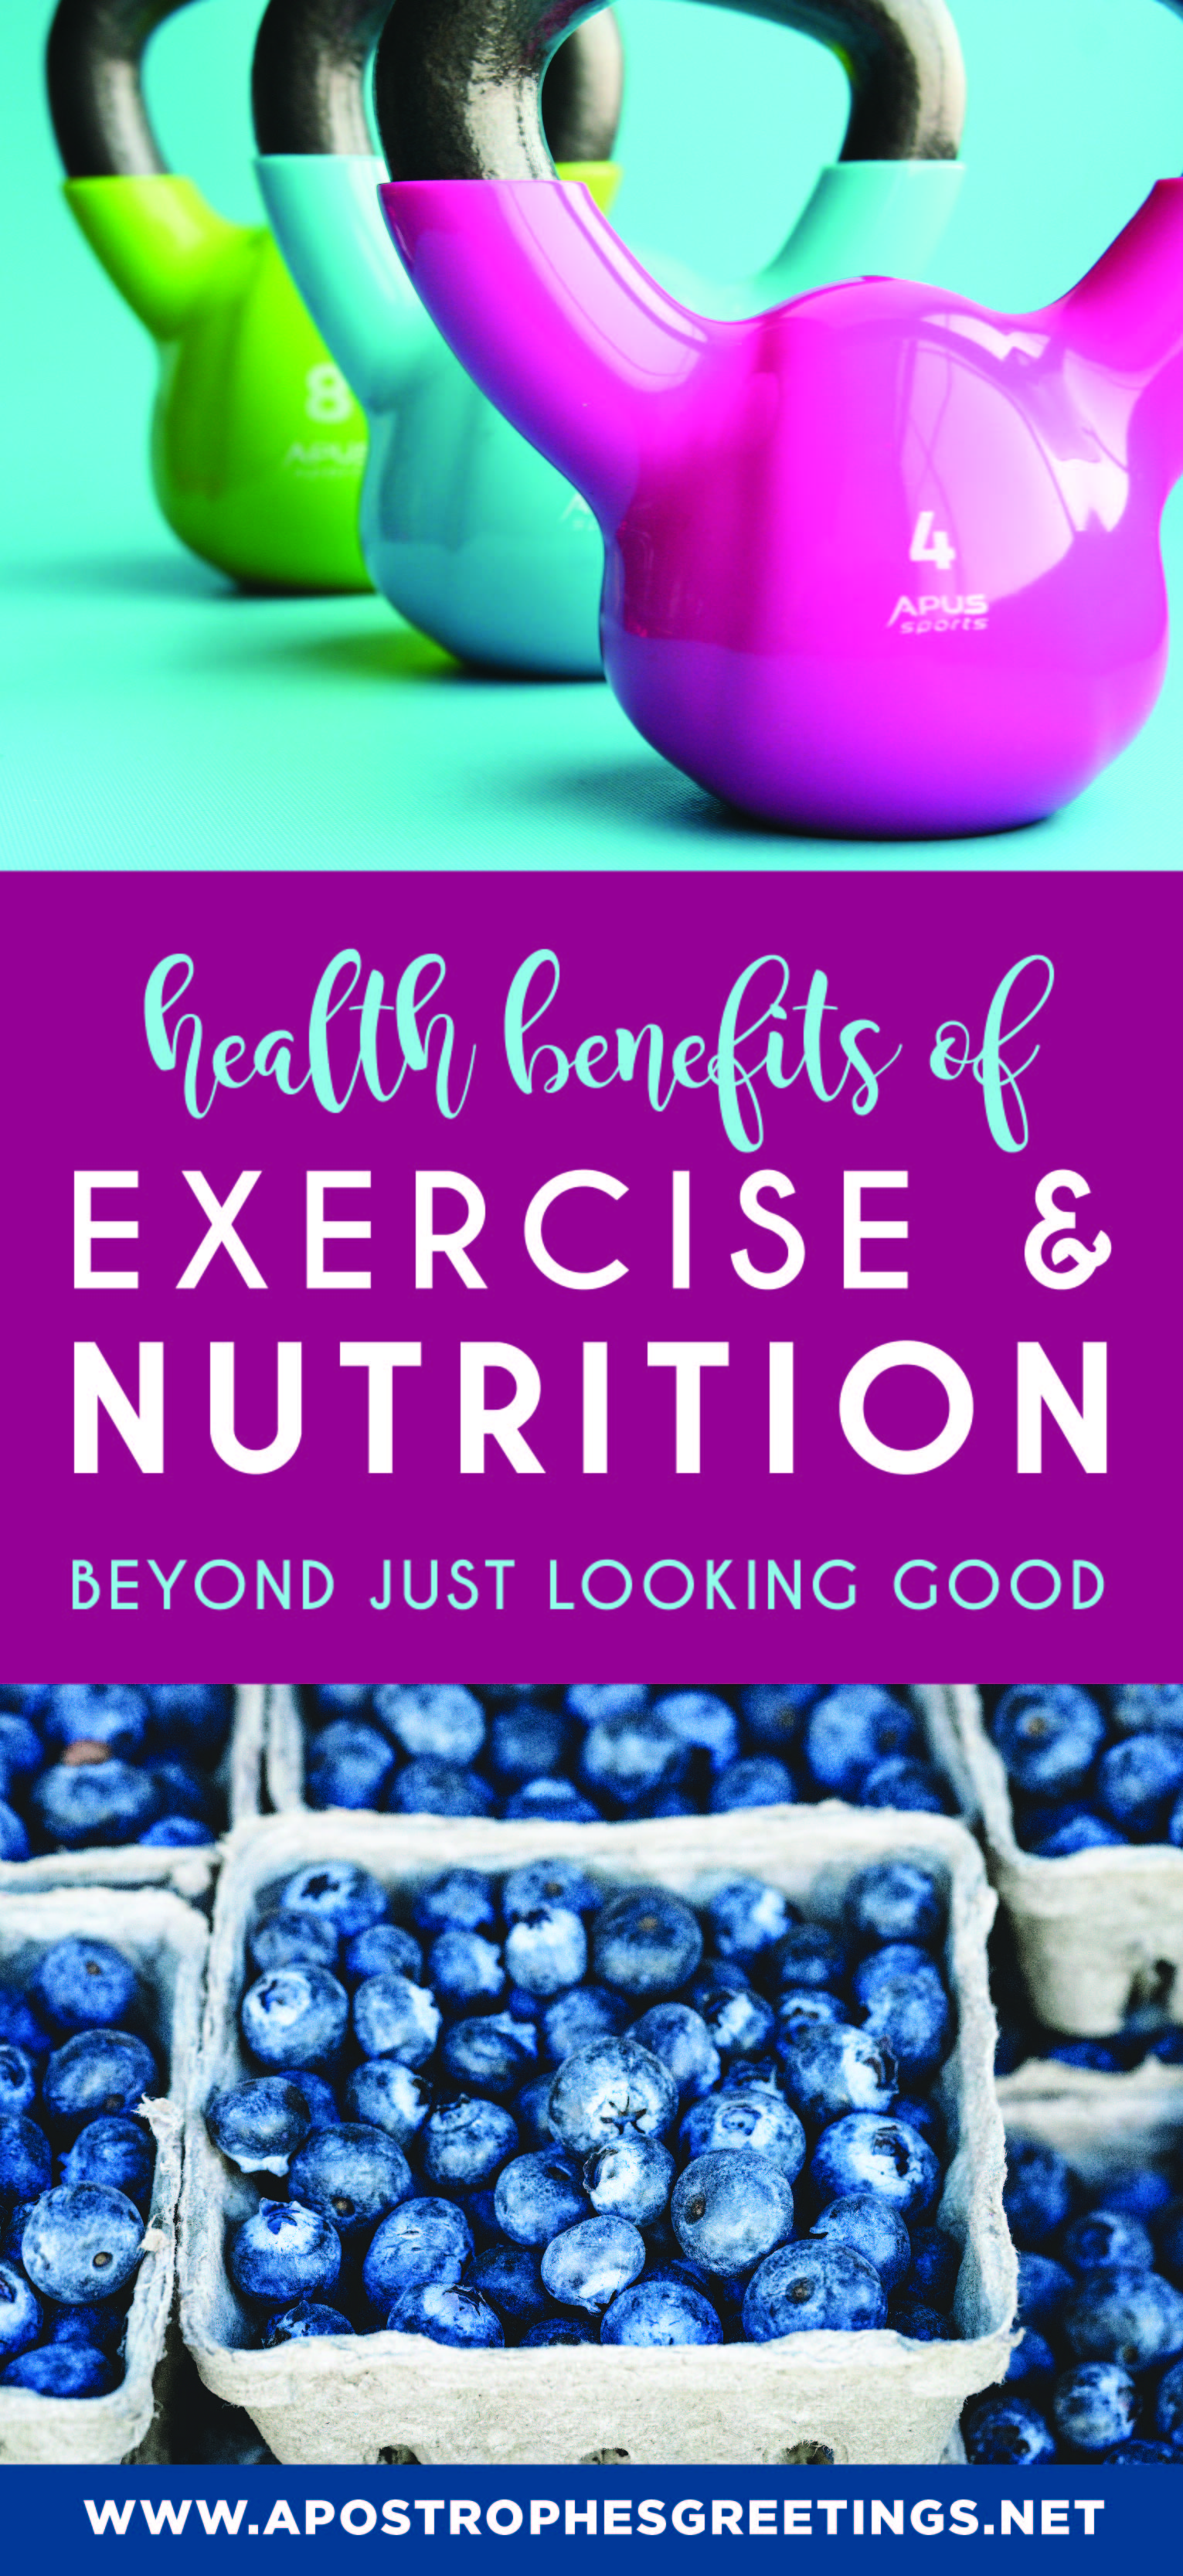 Health benefits of exercise and nutrition